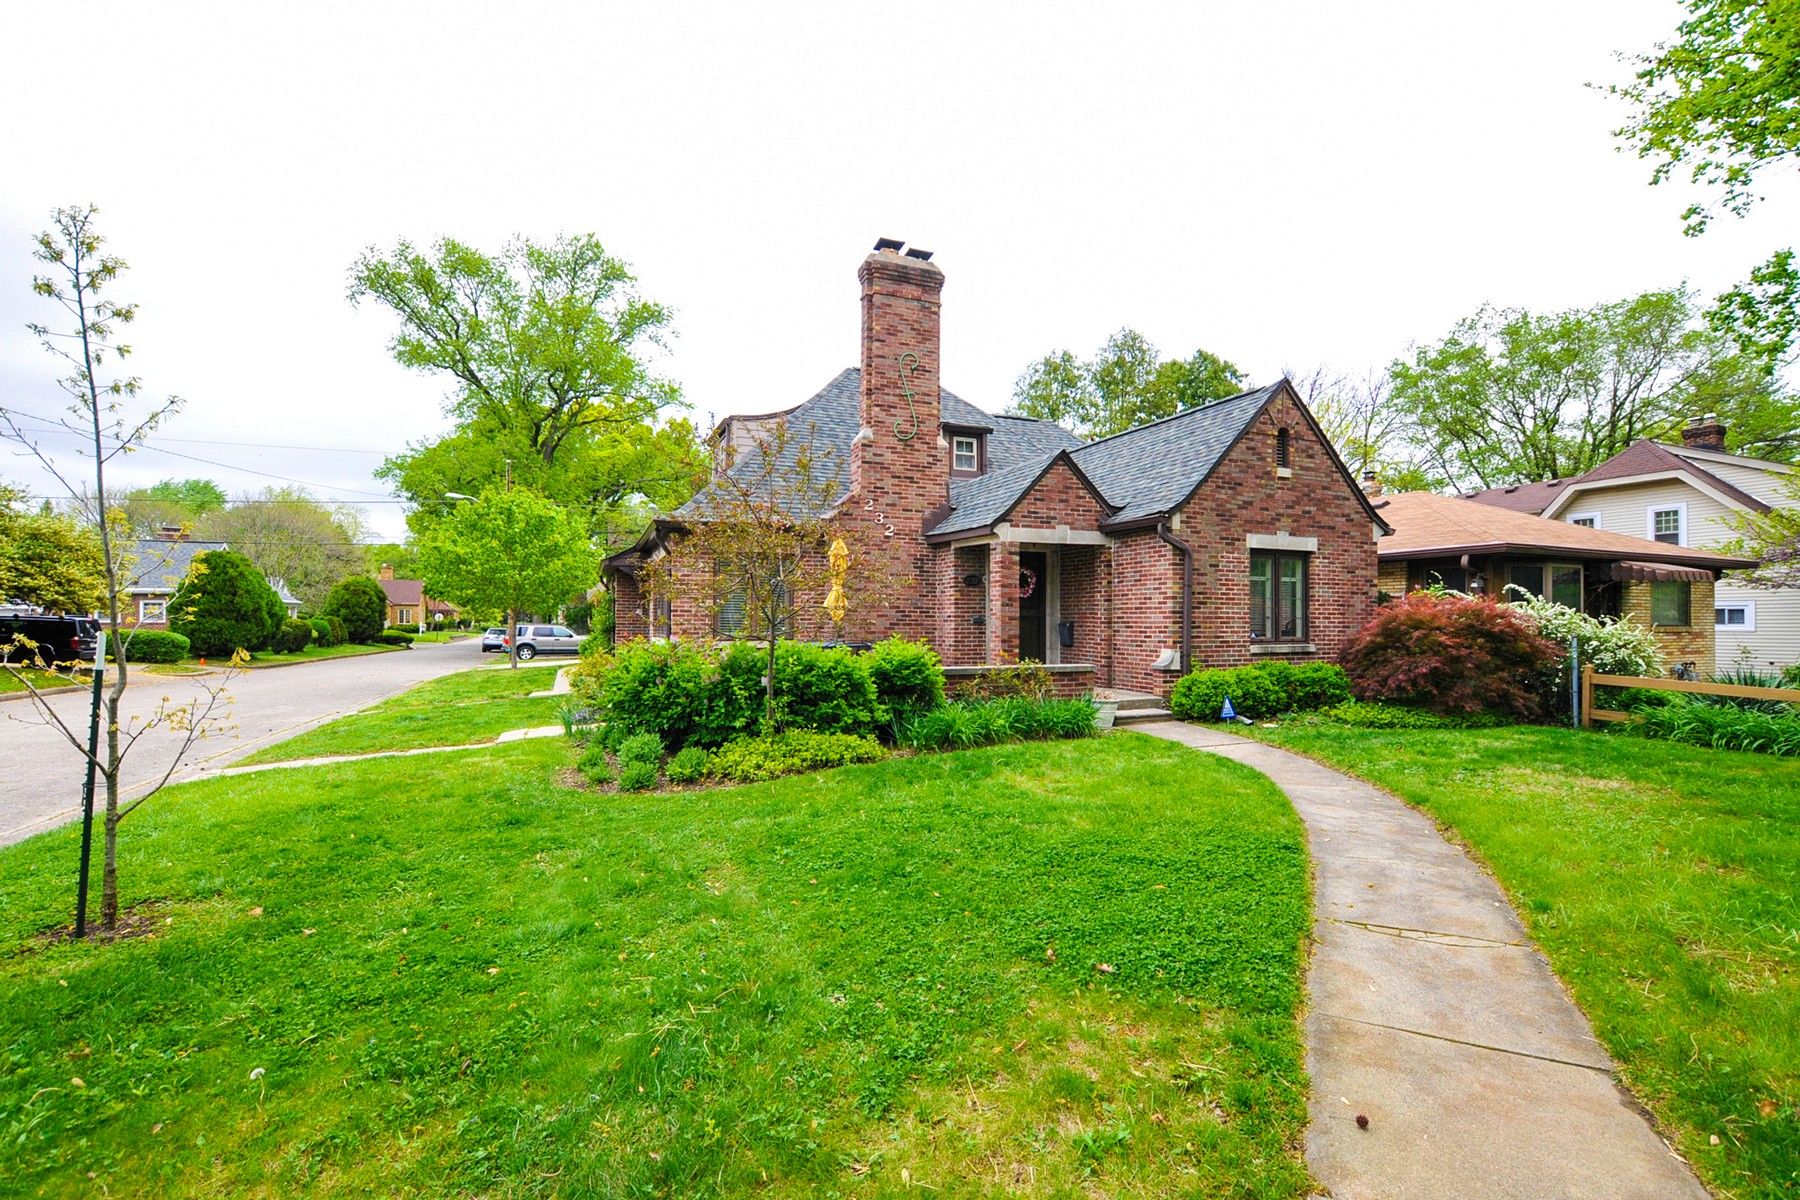 Single Family Home for Sale at Remarkable English Tudor Home 232 Berkley Road Indianapolis, Indiana 46208 United States